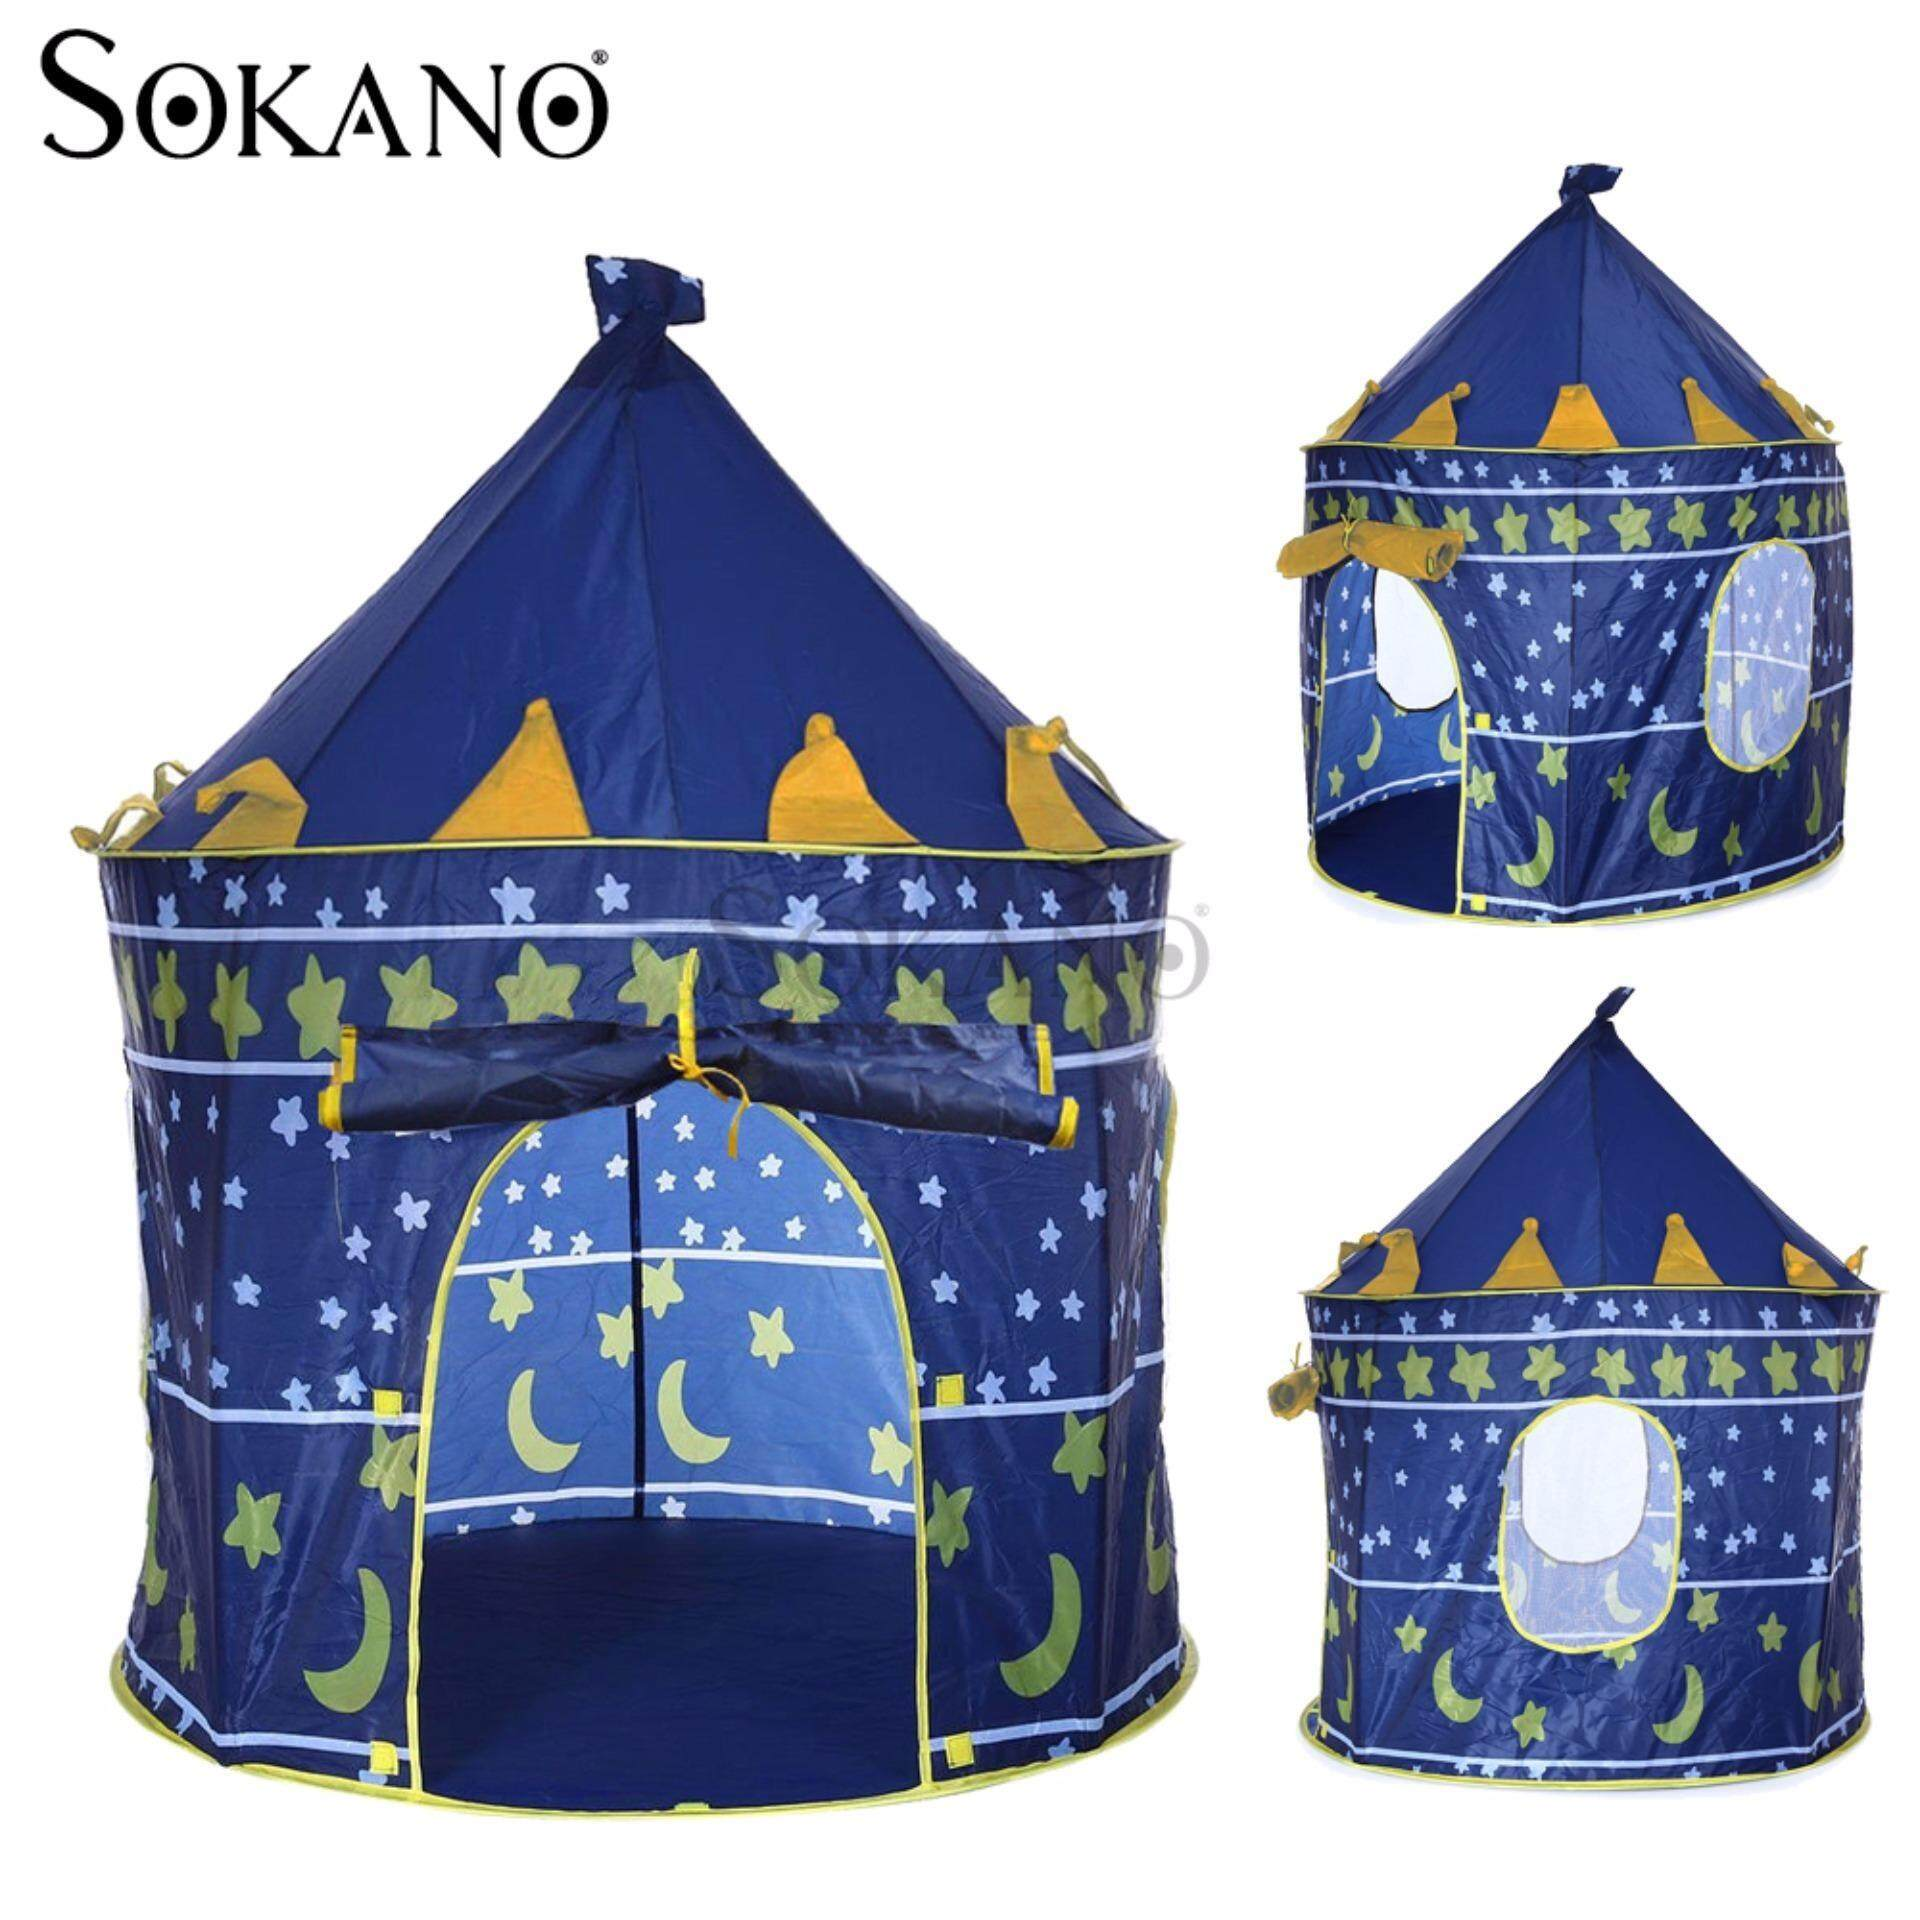 SOKANO Portable Folding Kids Play Tent Castle Cubby House - Prince(Blue) toys for girls